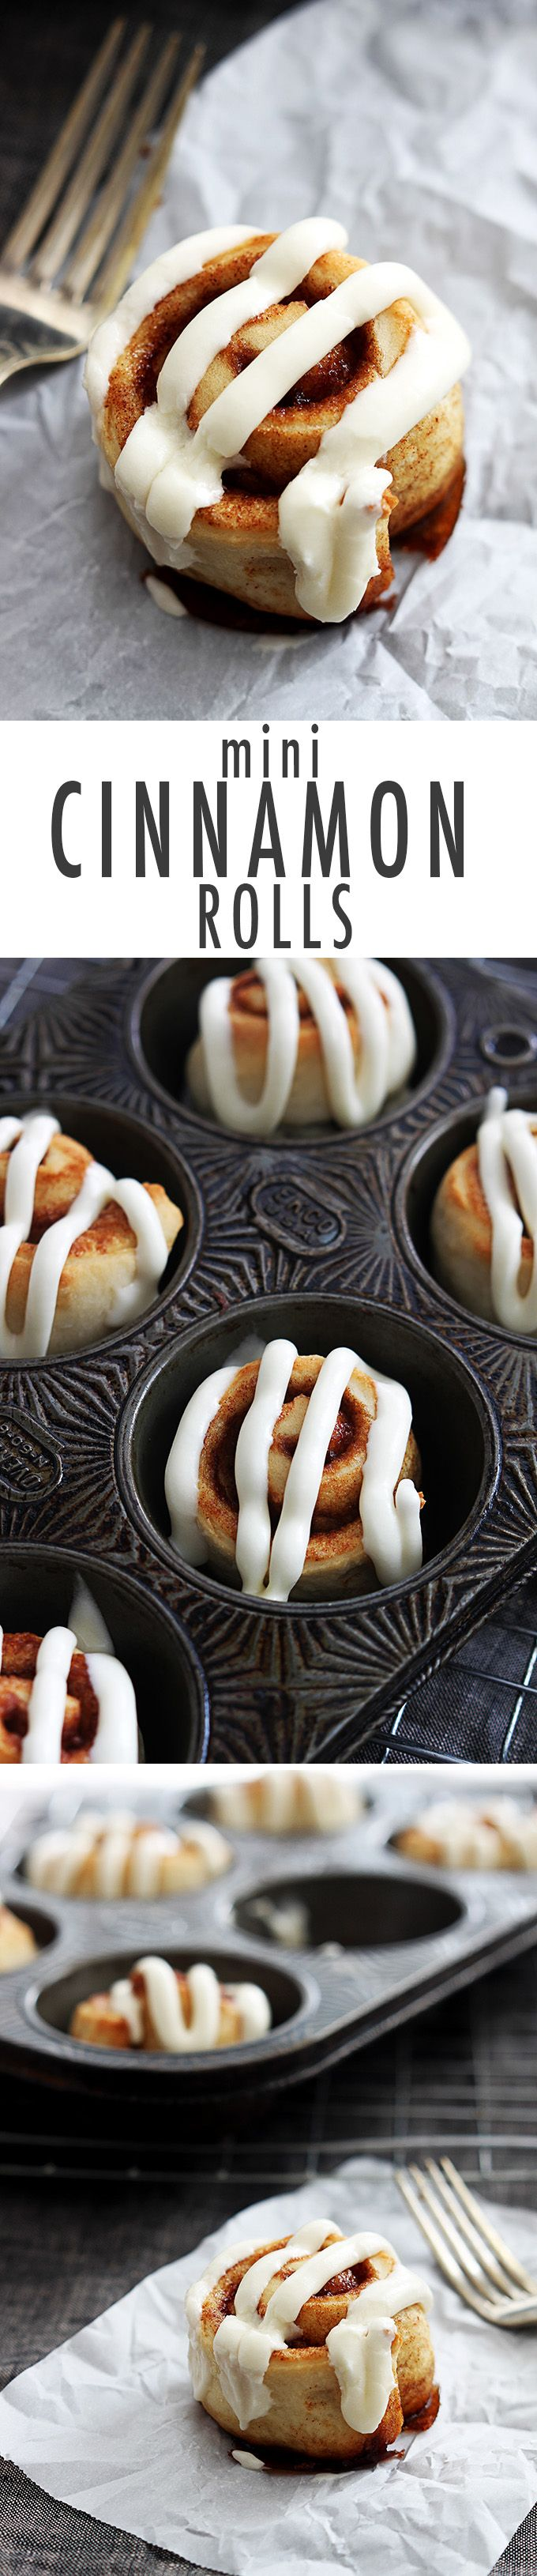 Fluffy mini cinnamon rolls with a super easy 5-ingredient dough made from scratch in just 30 minutes, all topped with the best cream cheese frosting.